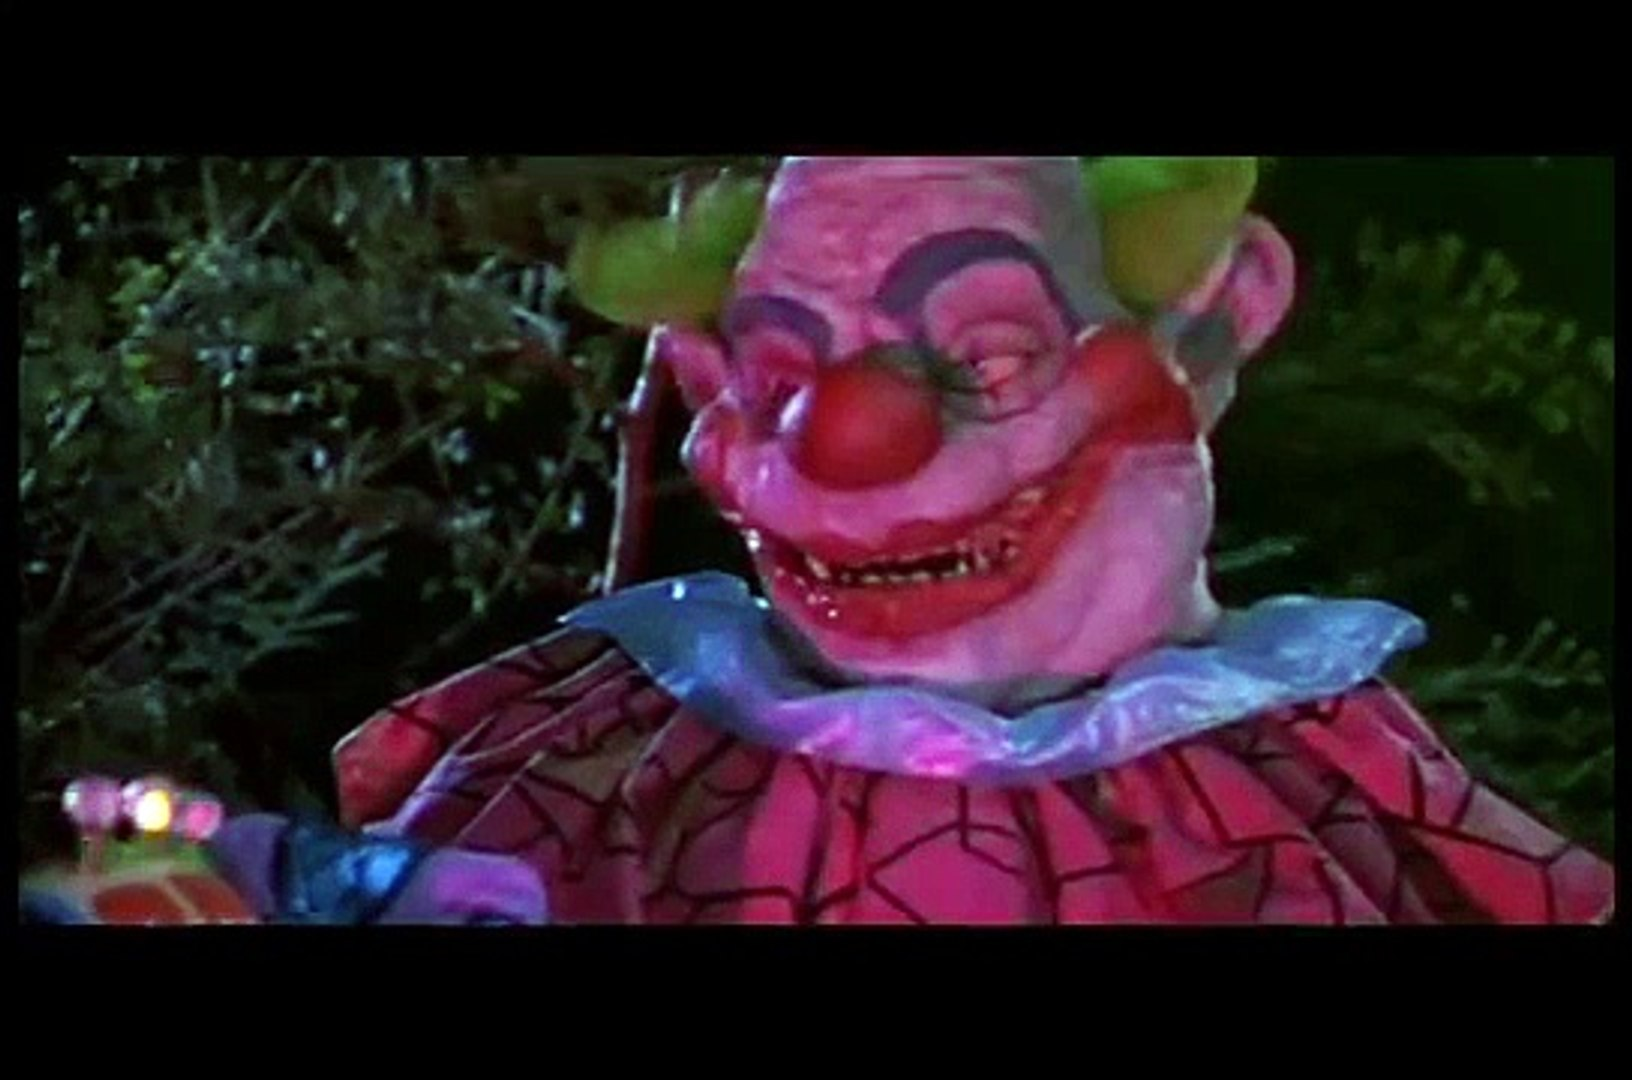 Killer Klowns from Outer Space (review, resume)